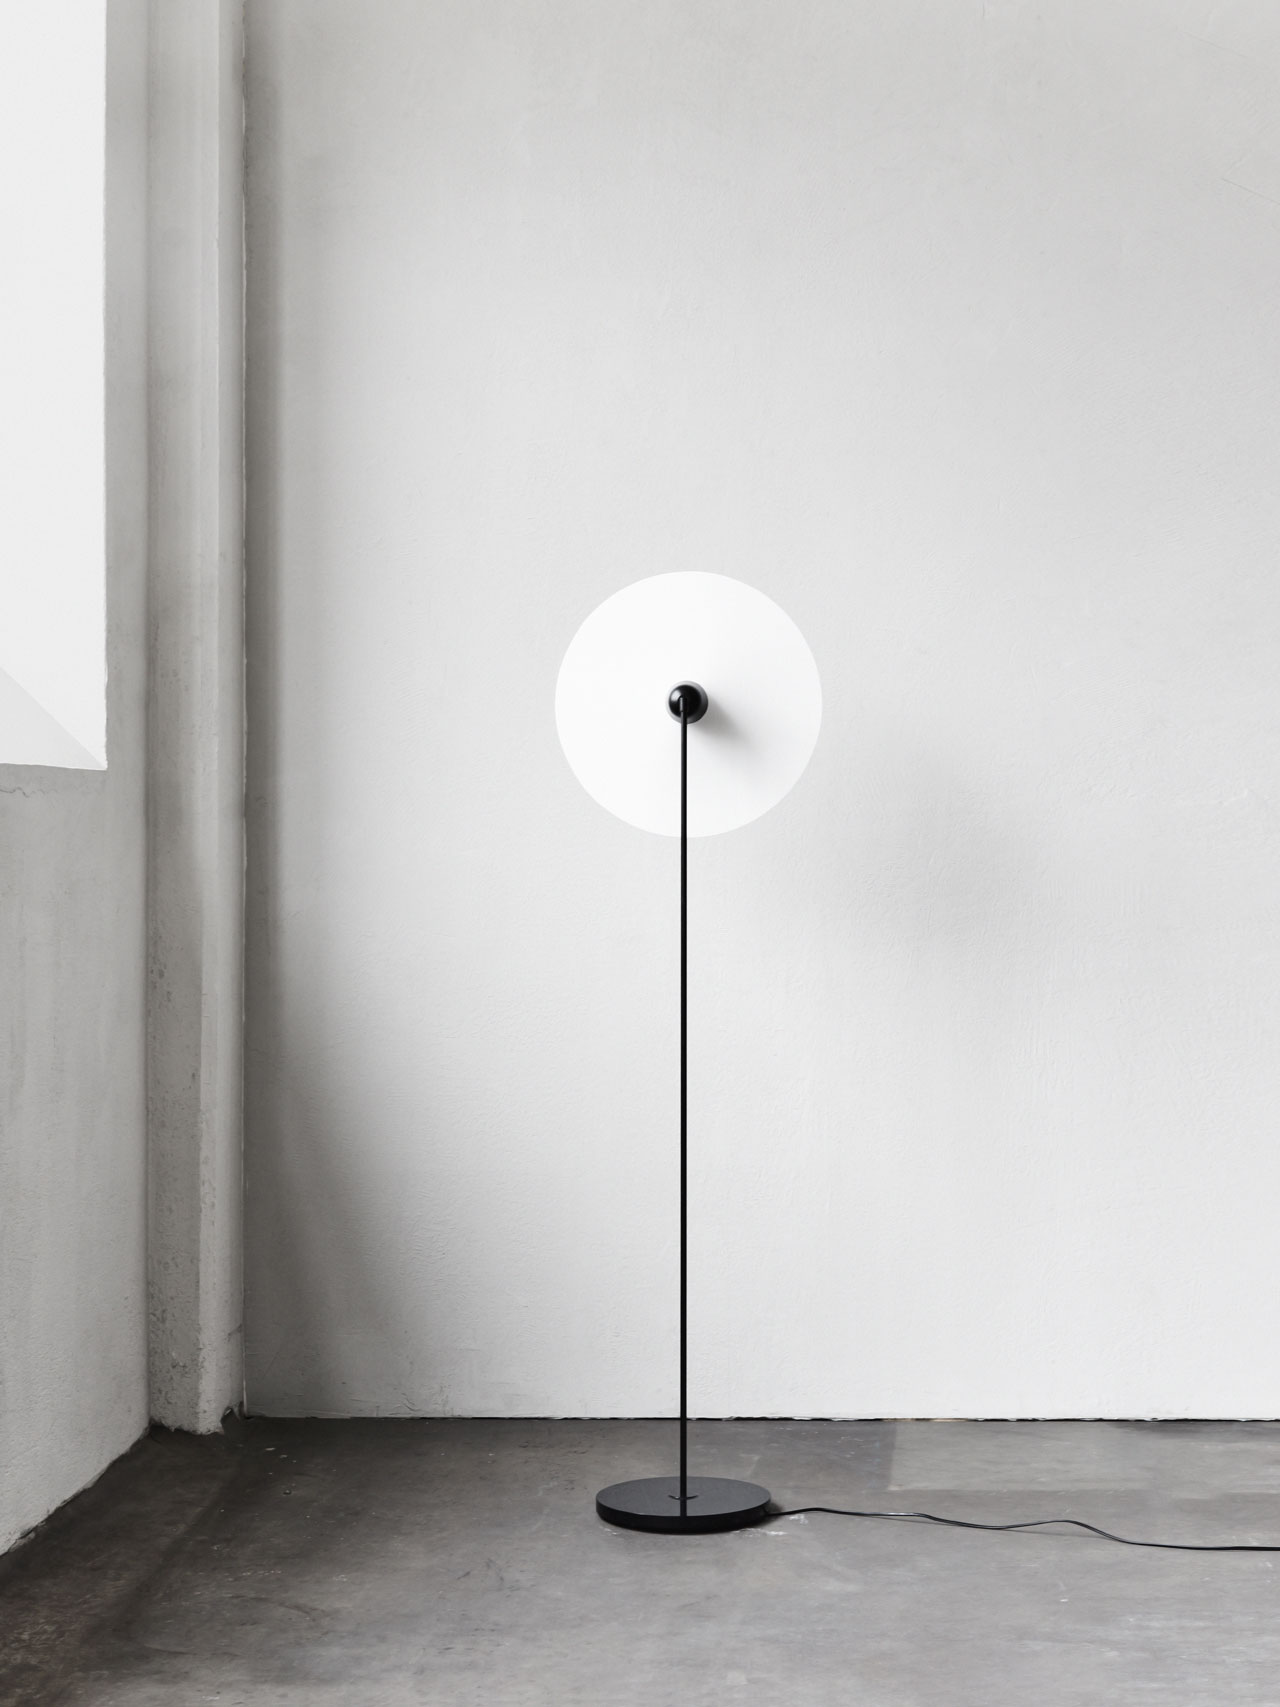 Kantarell lamp series by Falke Svatun Studio.Photography by Falke Svatun.